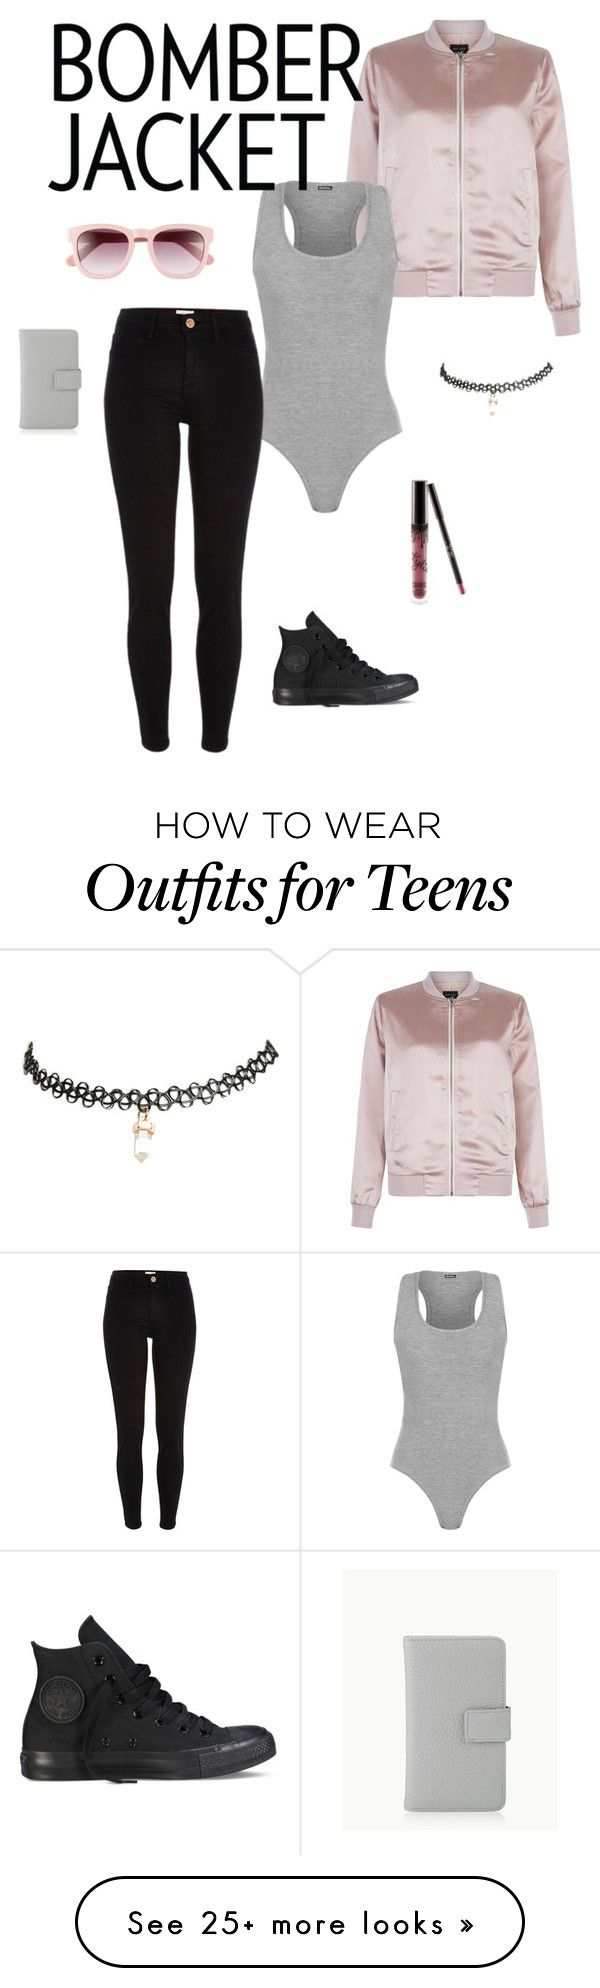 """""""Pink bomber jacket"""" by cynthiaf1344 on Polyvore featuring New Look, Converse, WearAll, River Island, Wildfox, Wet Seal, Kylie Cosmetics, GiGi New York and bomberjackets"""